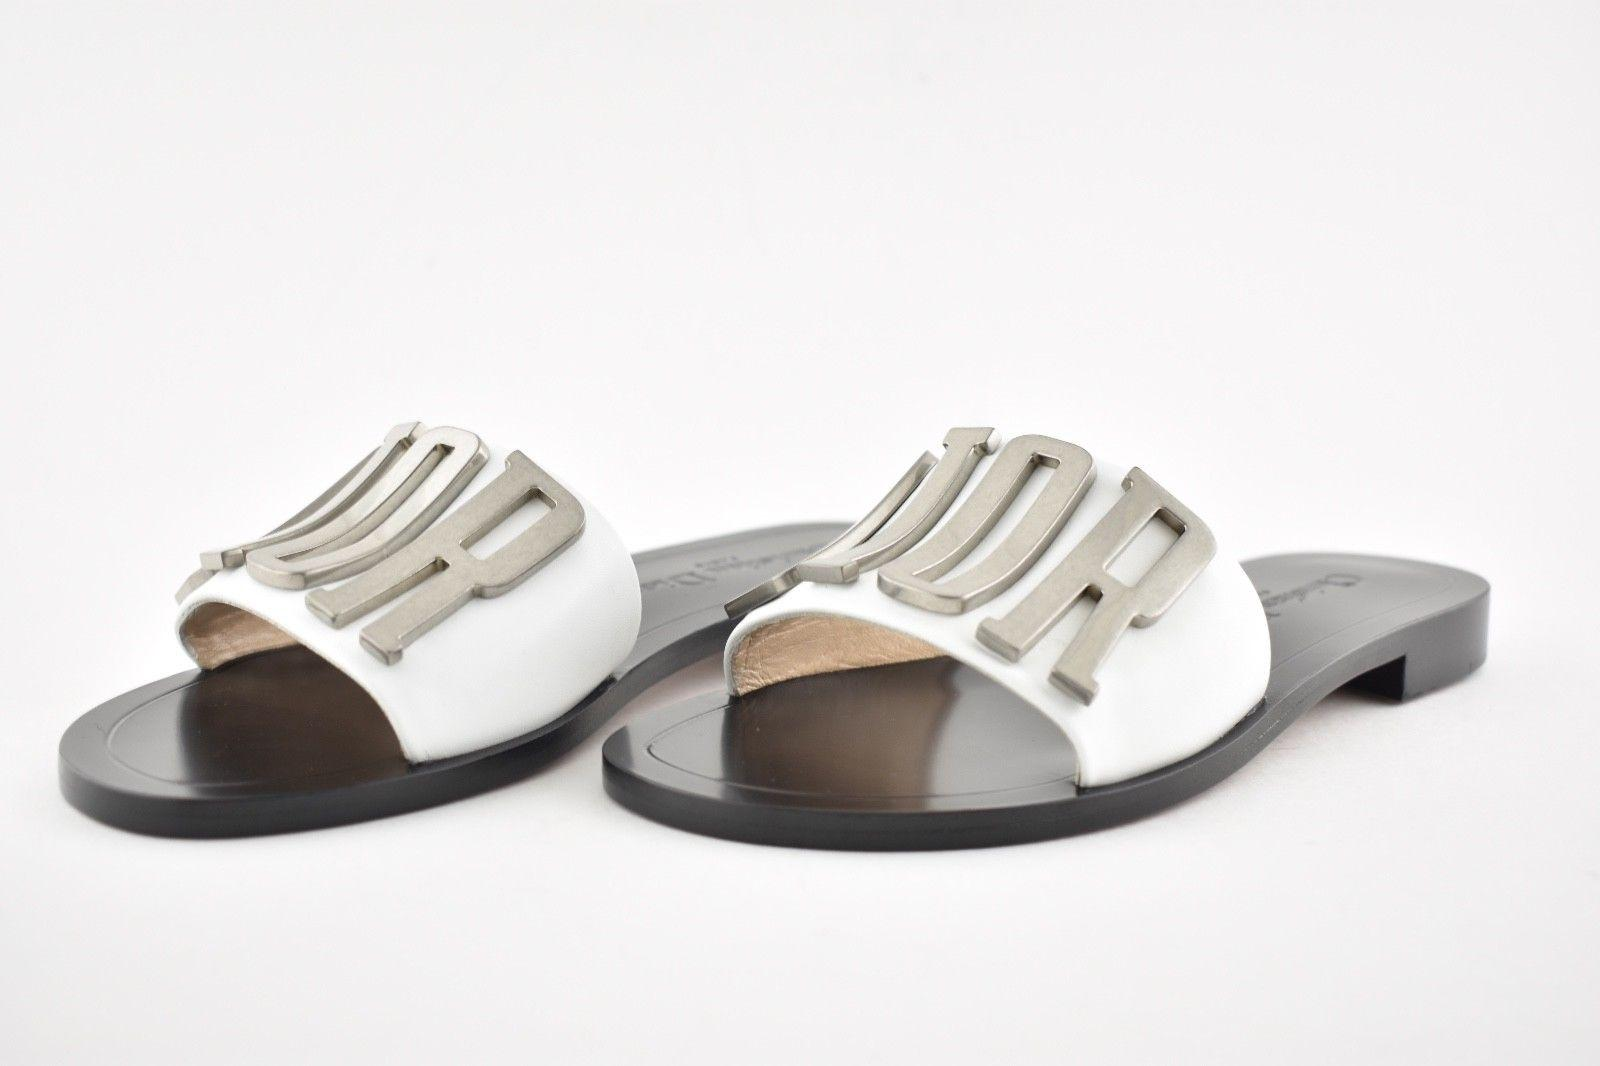 e3cdbe7fa5 ... Dior White Black Silver Logo Logo Logo Diorevolution Leather Mule Slide  Flat Sandals Size EU 36 ...